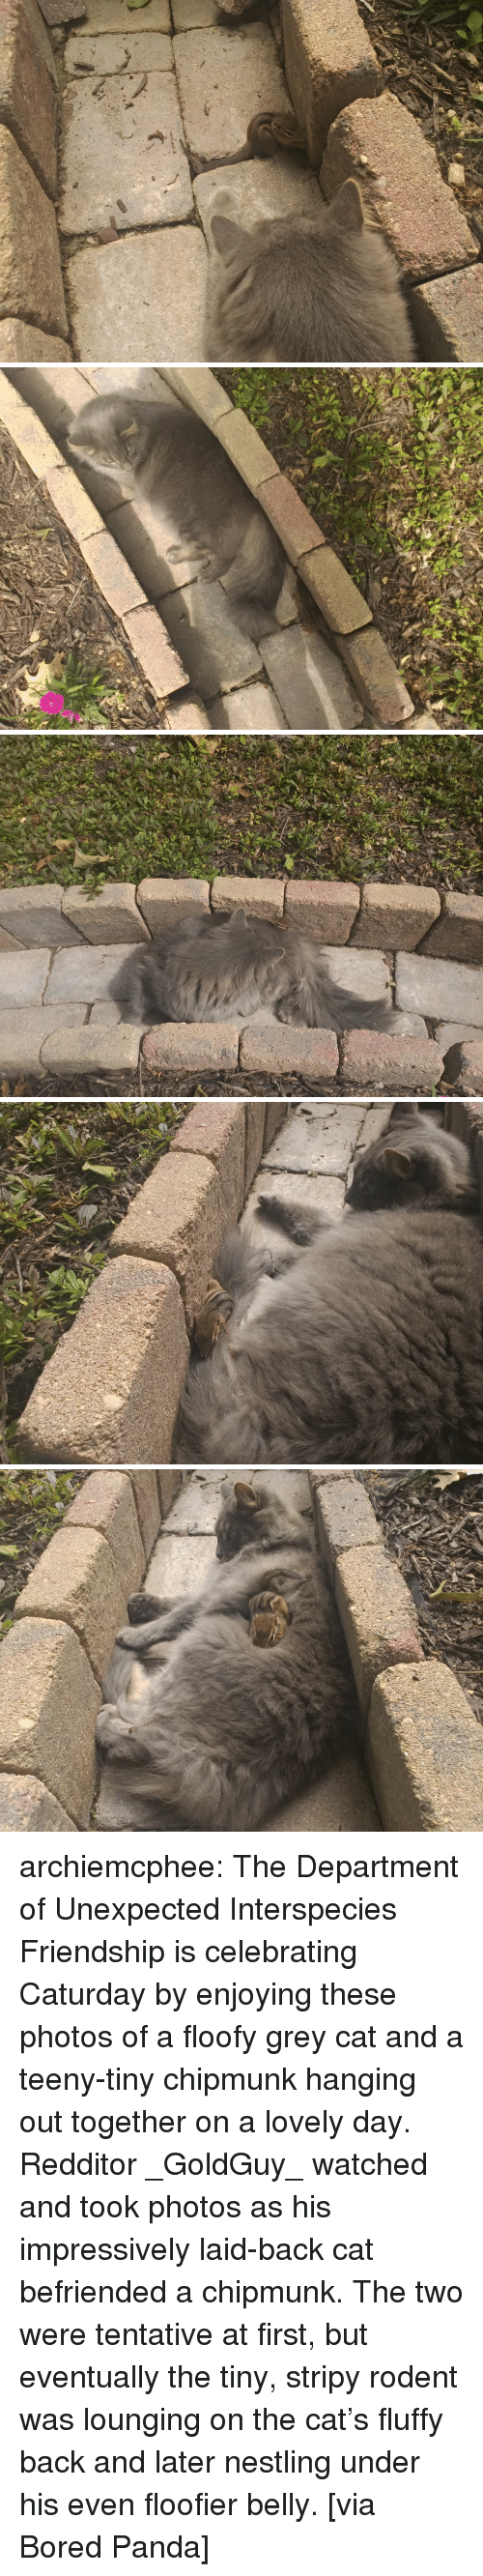 Bored Panda: archiemcphee: The Department of Unexpected Interspecies Friendship is celebrating Caturday by enjoying these photos of a floofy grey cat and a teeny-tiny chipmunk hanging out together on a lovely day. Redditor _GoldGuy_ watched and took photos as his impressively laid-back cat befriended a chipmunk. The two were tentative at first, but eventually the tiny, stripy rodent was lounging on the cat's fluffy back and later nestling under his even floofier belly. [via Bored Panda]